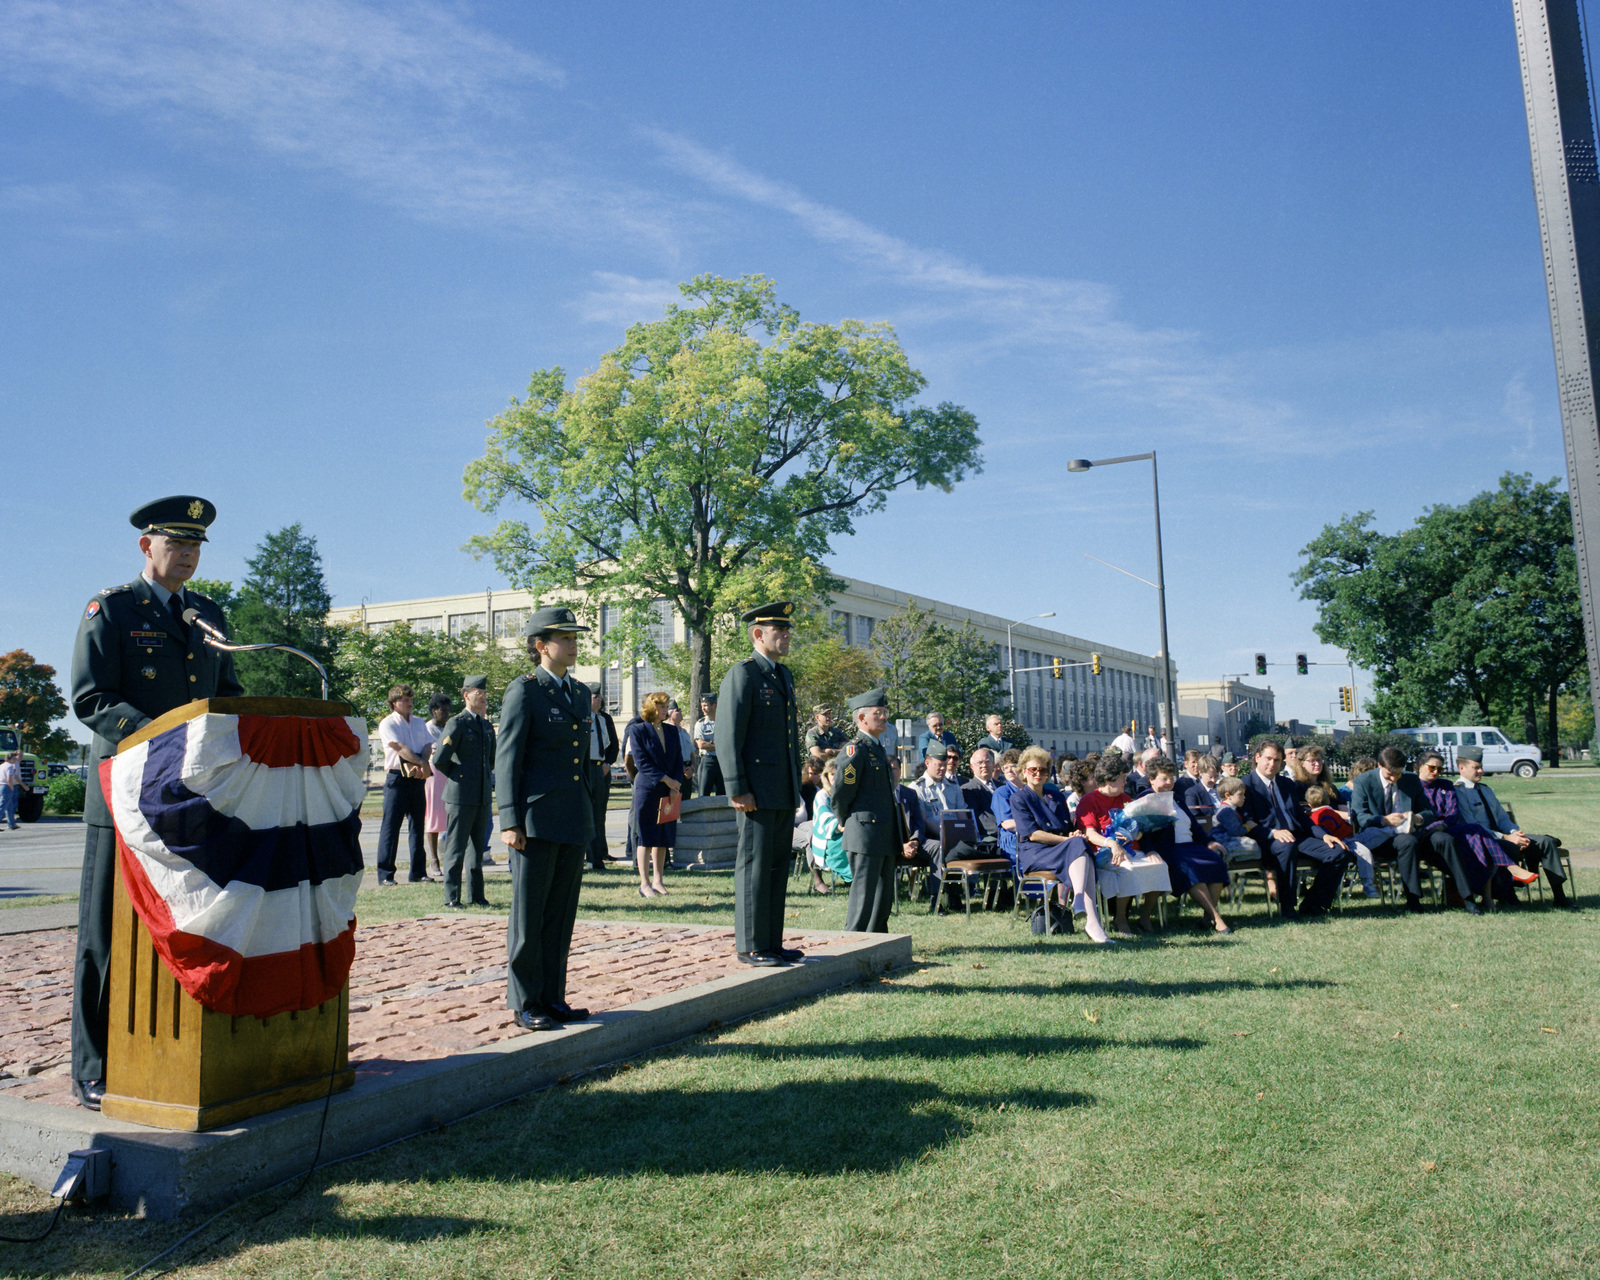 COL Richard W. Bregard, the new commanding officer of the arsenal, speaks during the ceremony at which he assumes command. Standing by are CPT St. John and CPT Gneimi